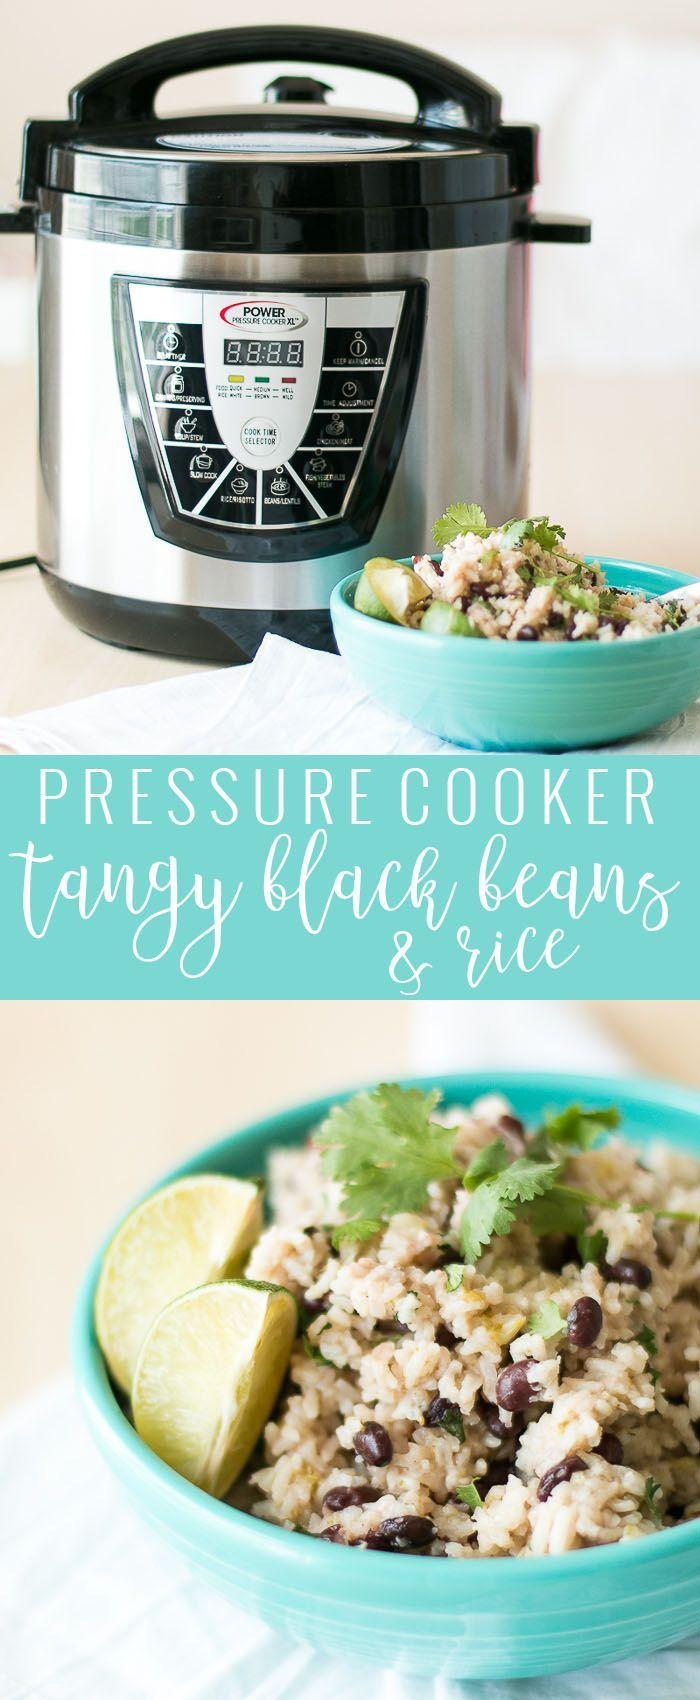 Pressure Cooker Black Beans and Rice   how to make black beans in a pressure cooker   pressure cooker rice recipes   pressure cooker side dishes   homemade rice and beans recipe   how to make rice and beans   easy side dish recipes   recipes using rice an